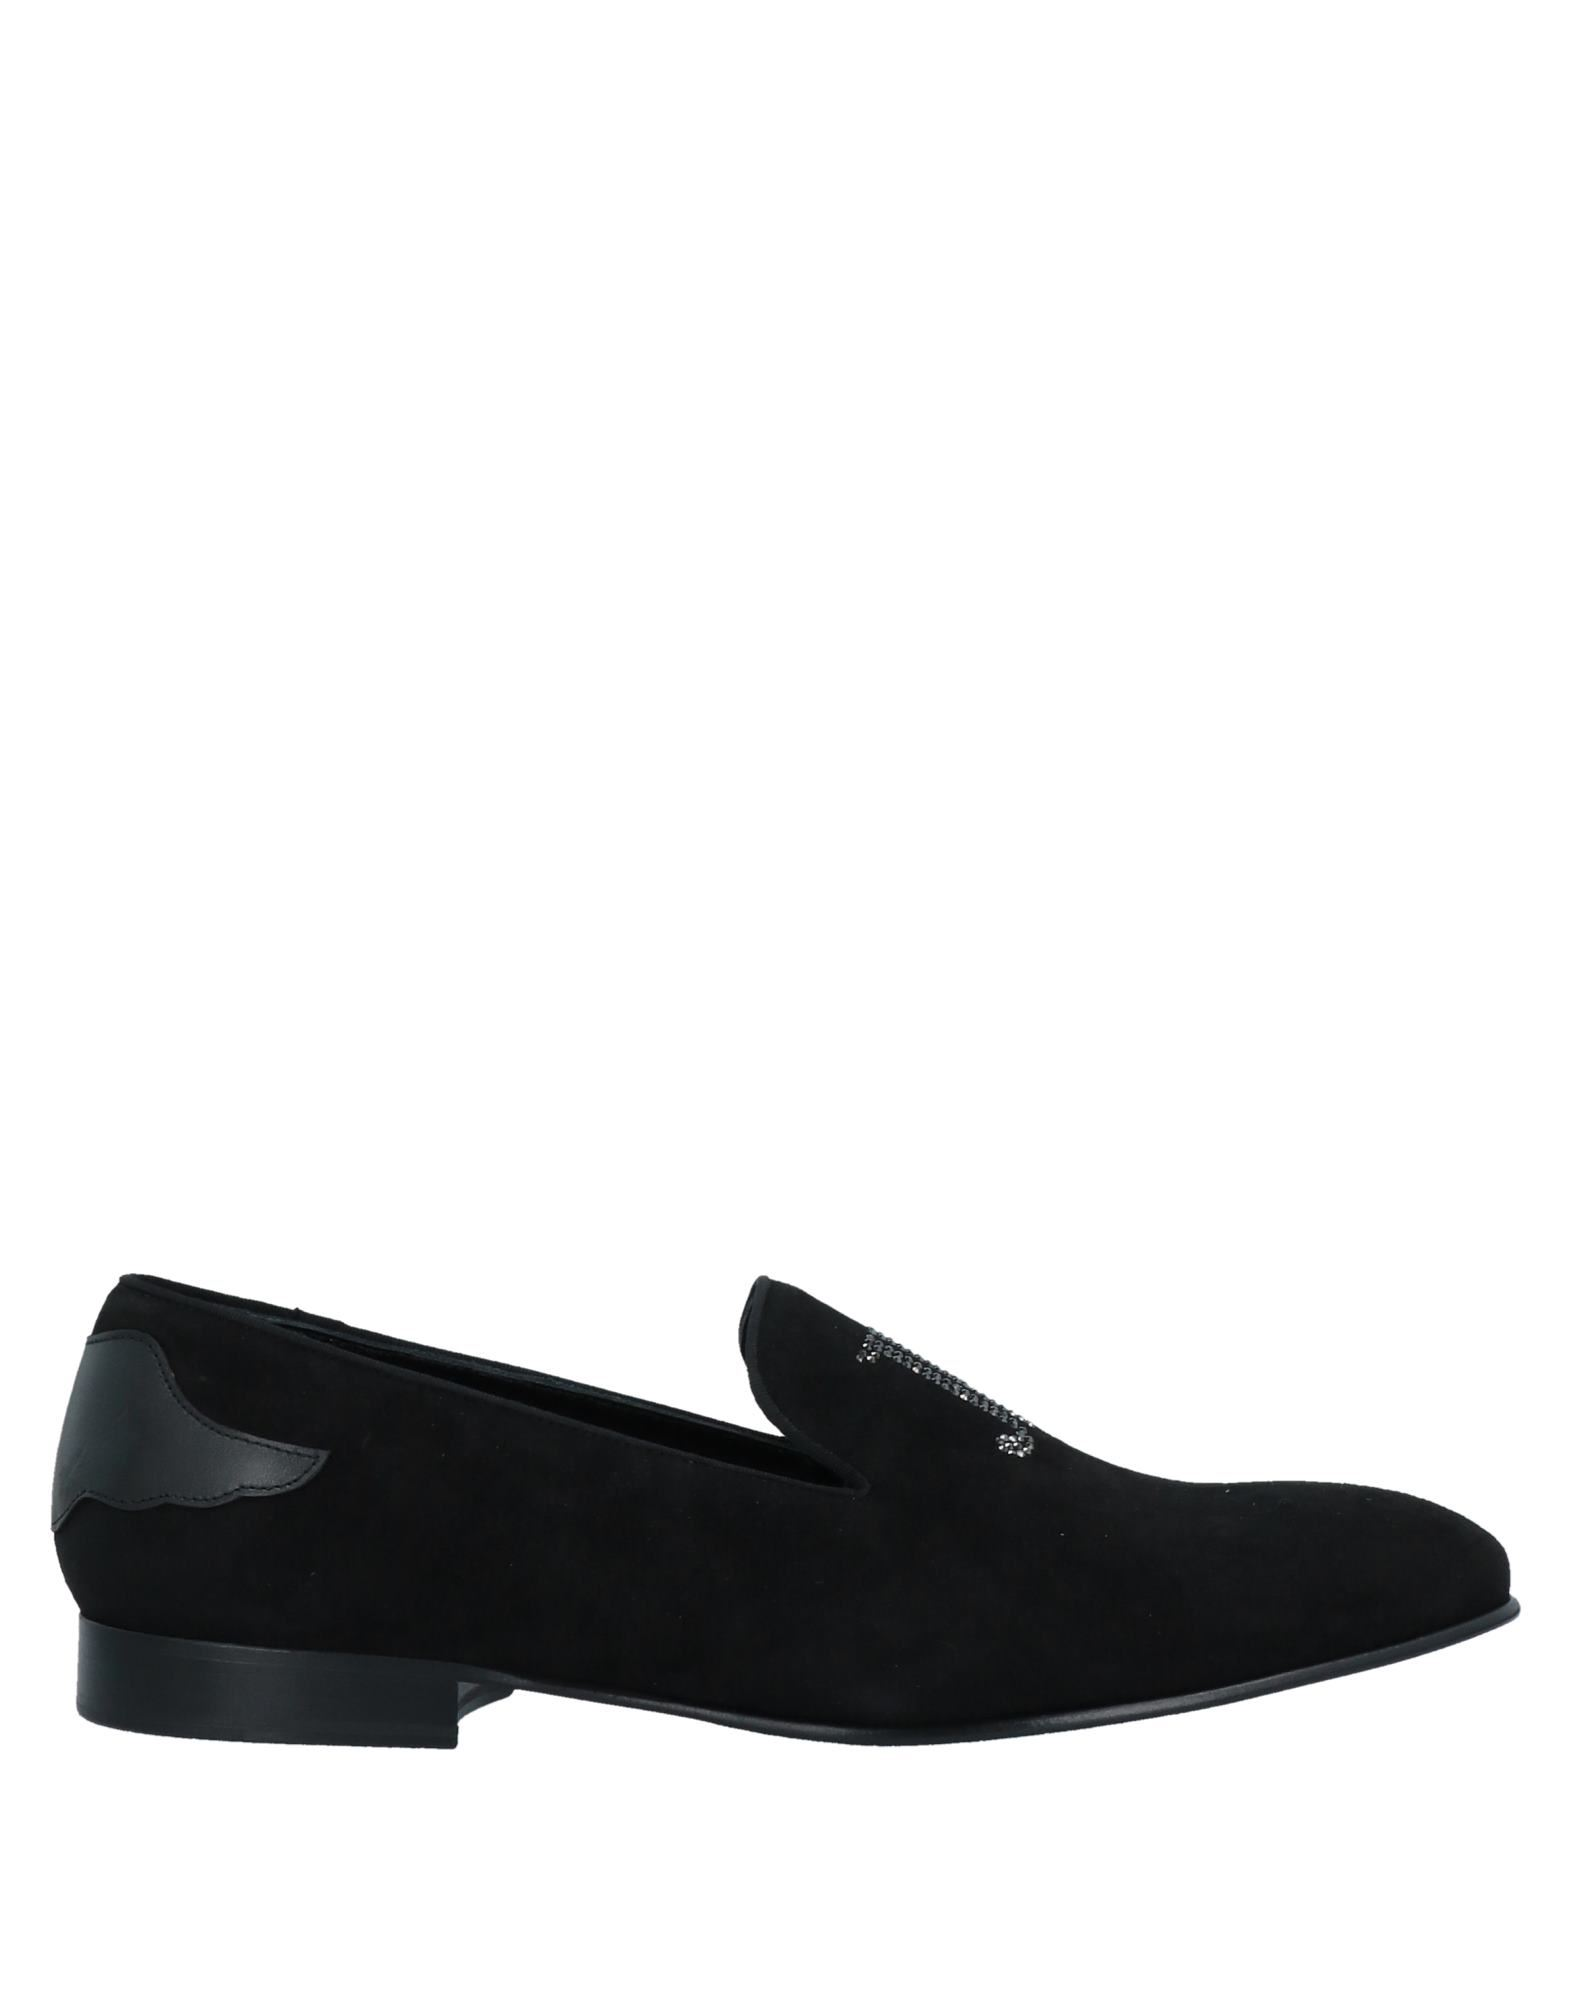 JOHN RICHMOND Loafers - Item 17004275